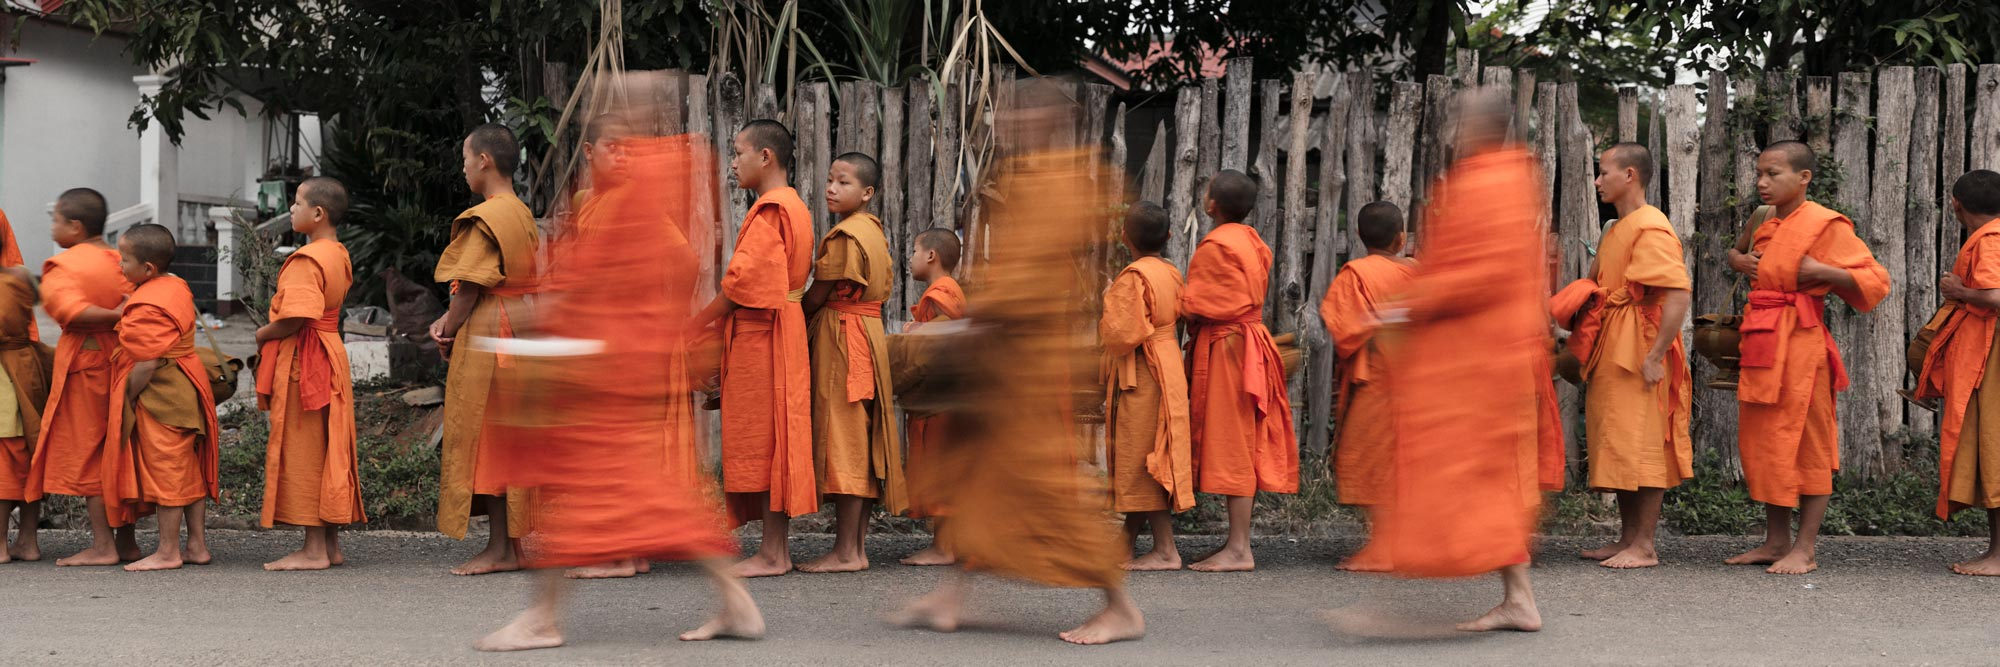 Young Buddhist Monks as they form a line to begin the alms giving ceremony in Laos